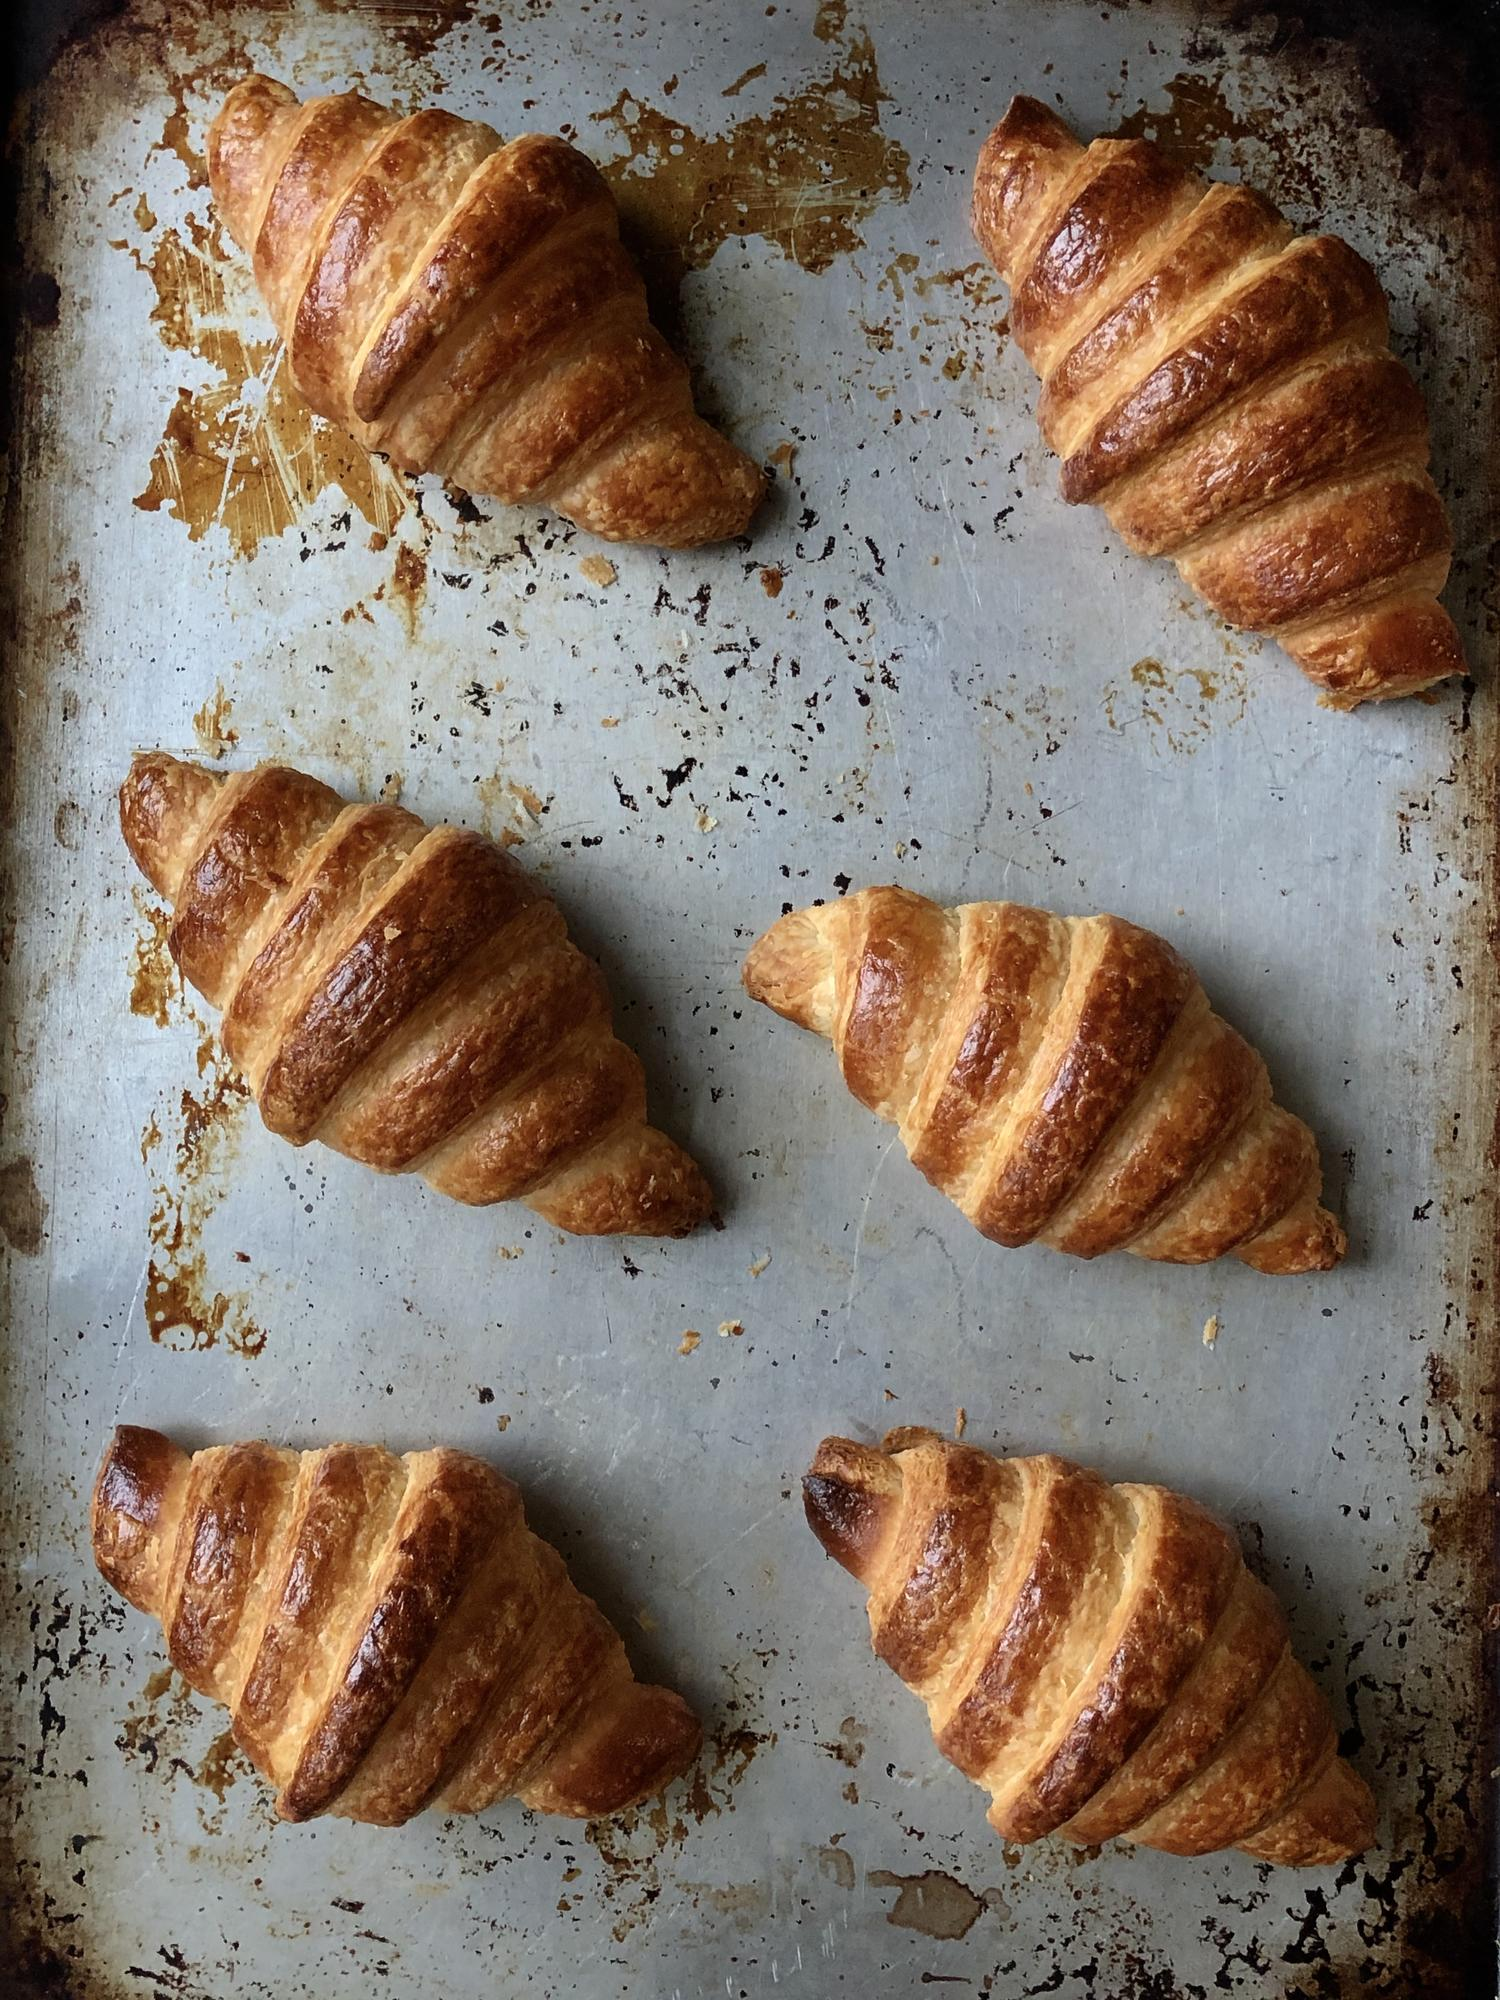 Post in Croissant feedback and trouble shooting